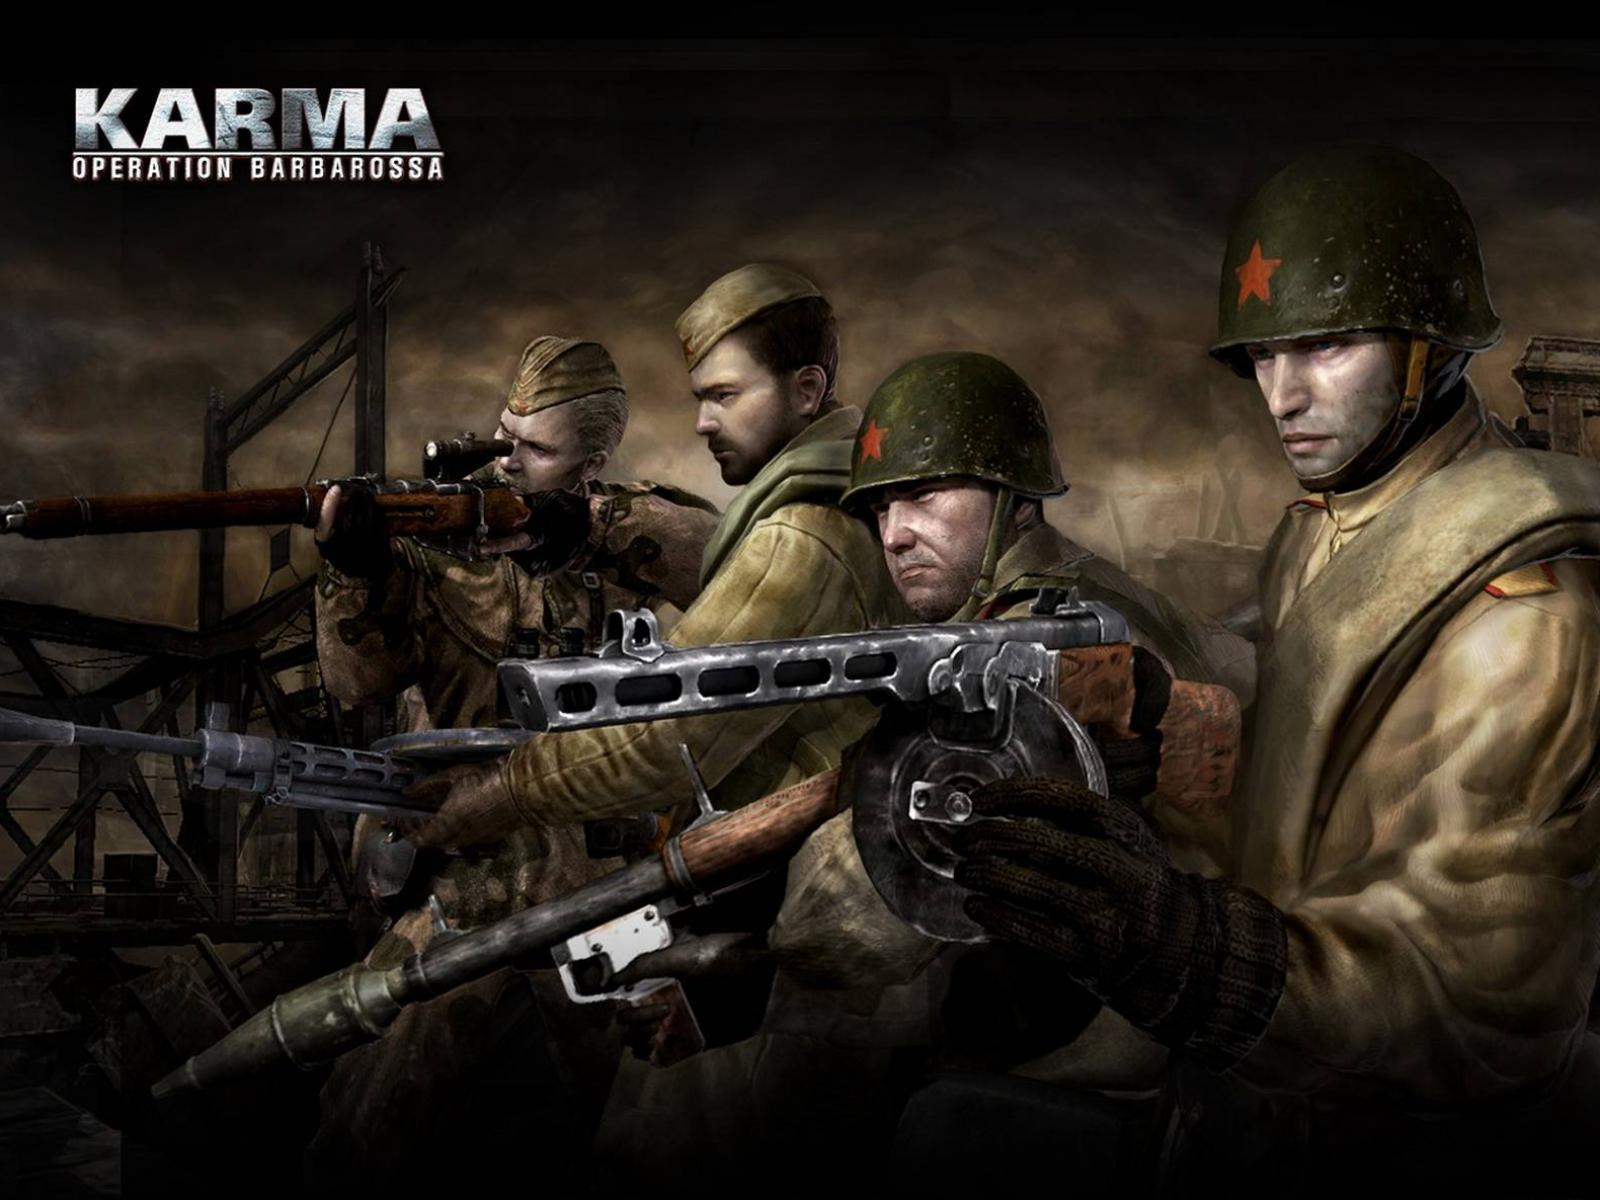 Обои Karma Operation Barbarossa 1600x1200